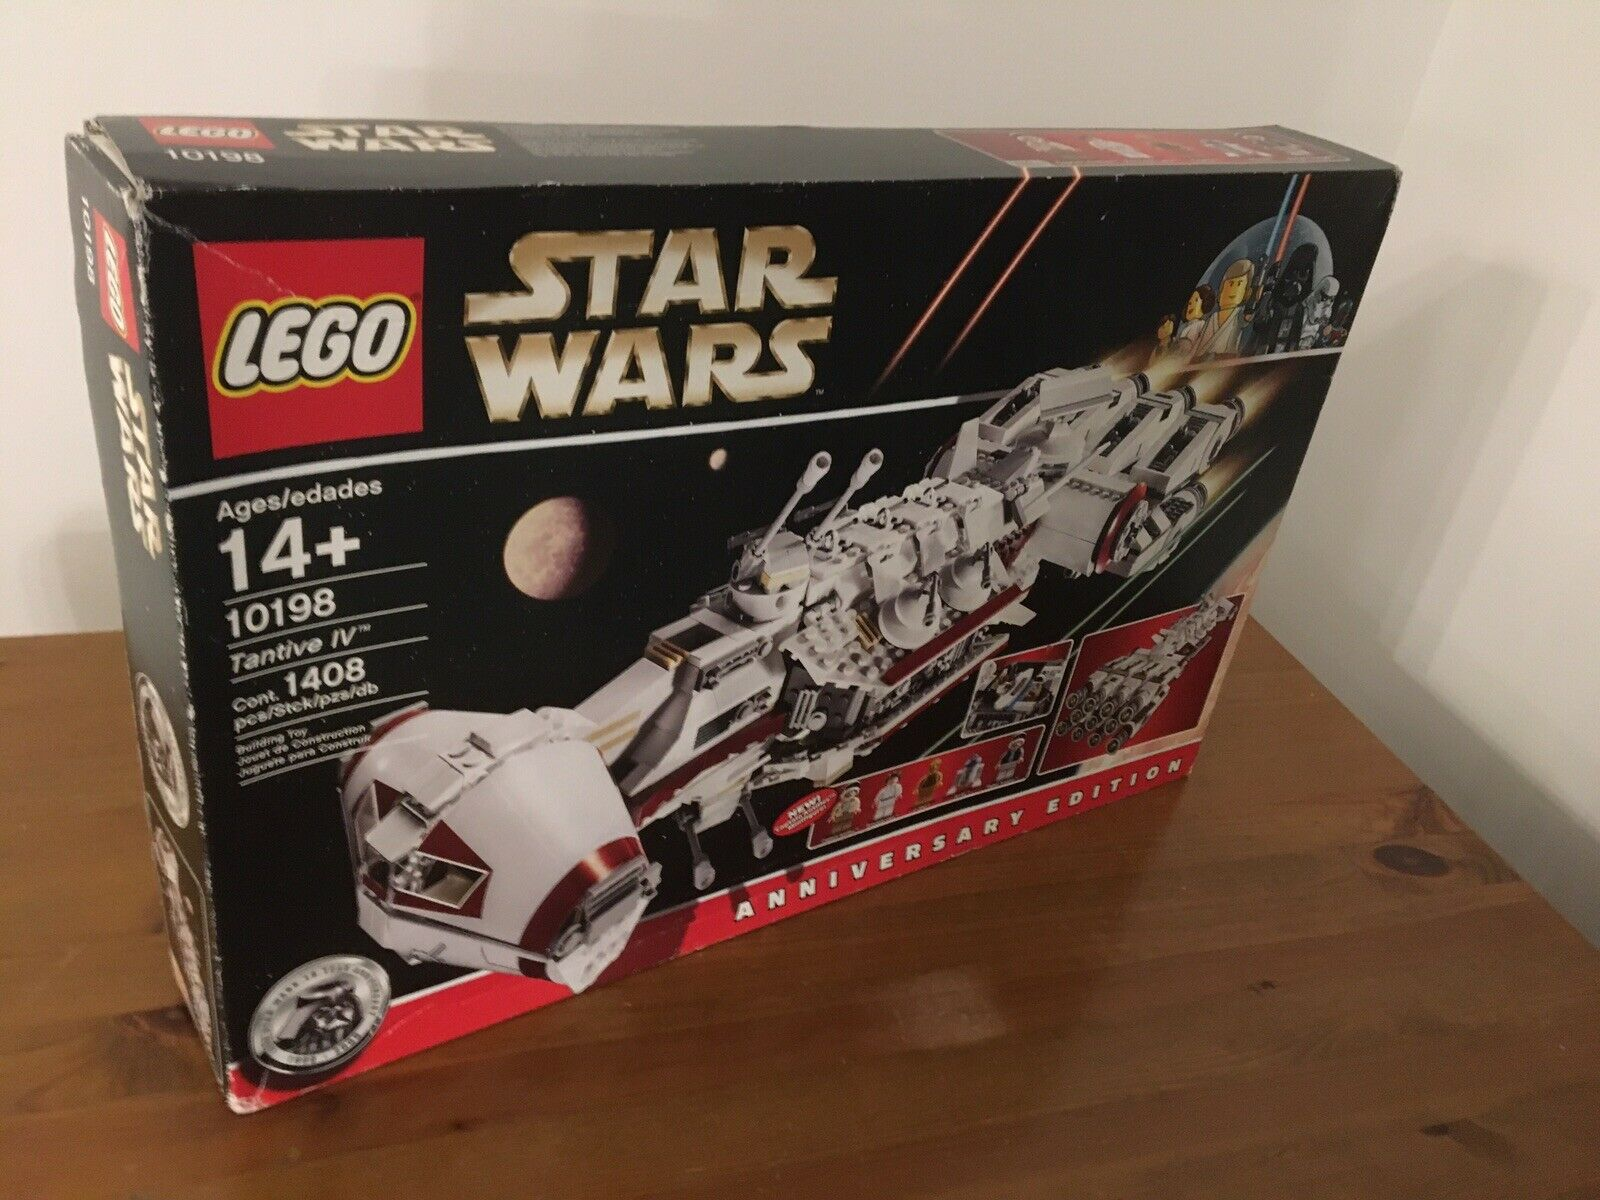 Star Wars Lego 10198  Tantive IV 100% Complete & Boxed